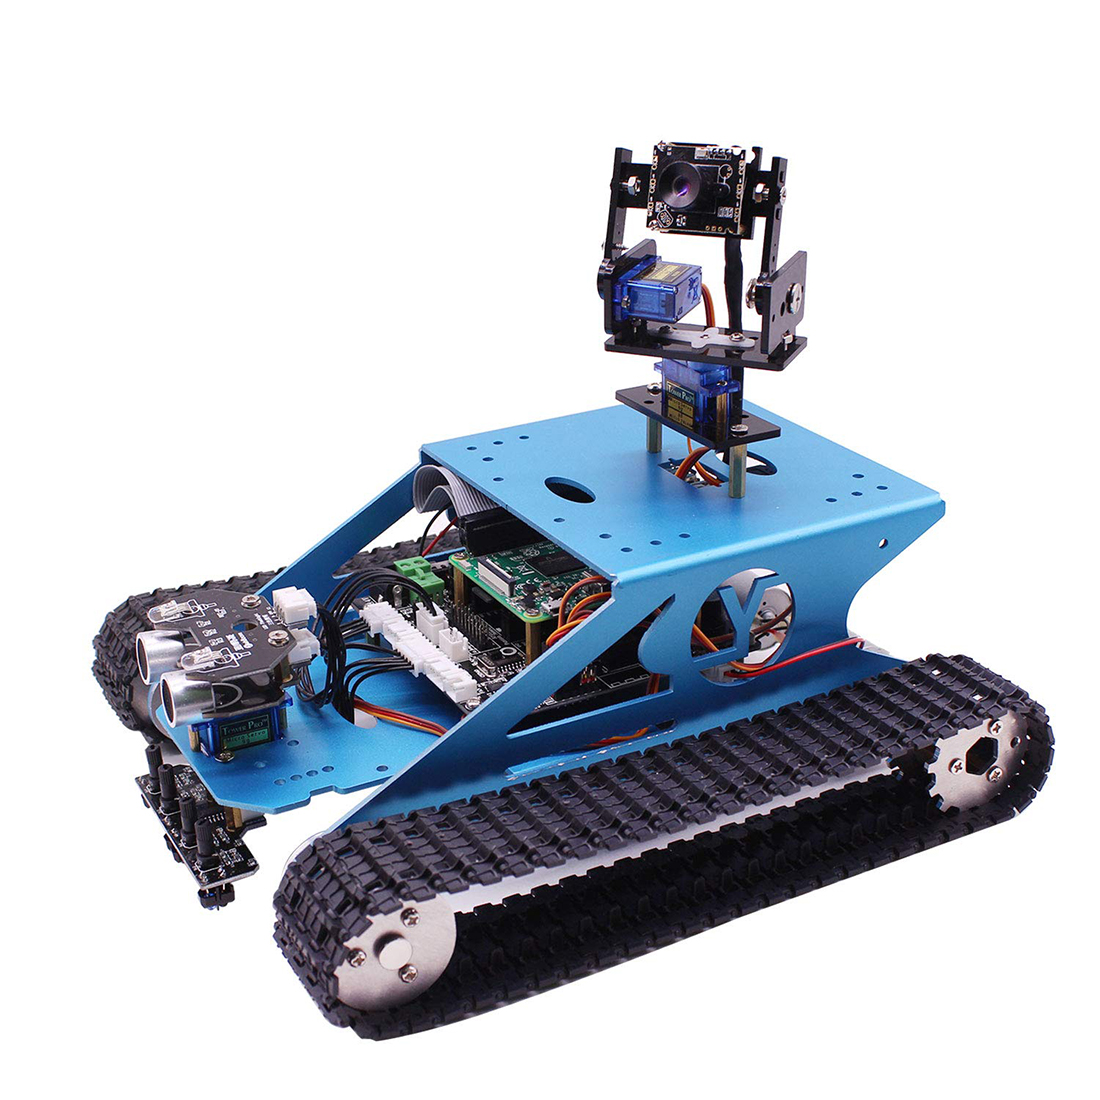 New Hot Raspberry Pi Tank Smart Robotic Kit WiFi Wireless Video Programming Electronic Toy DIY Robot Kit For Kids Adults